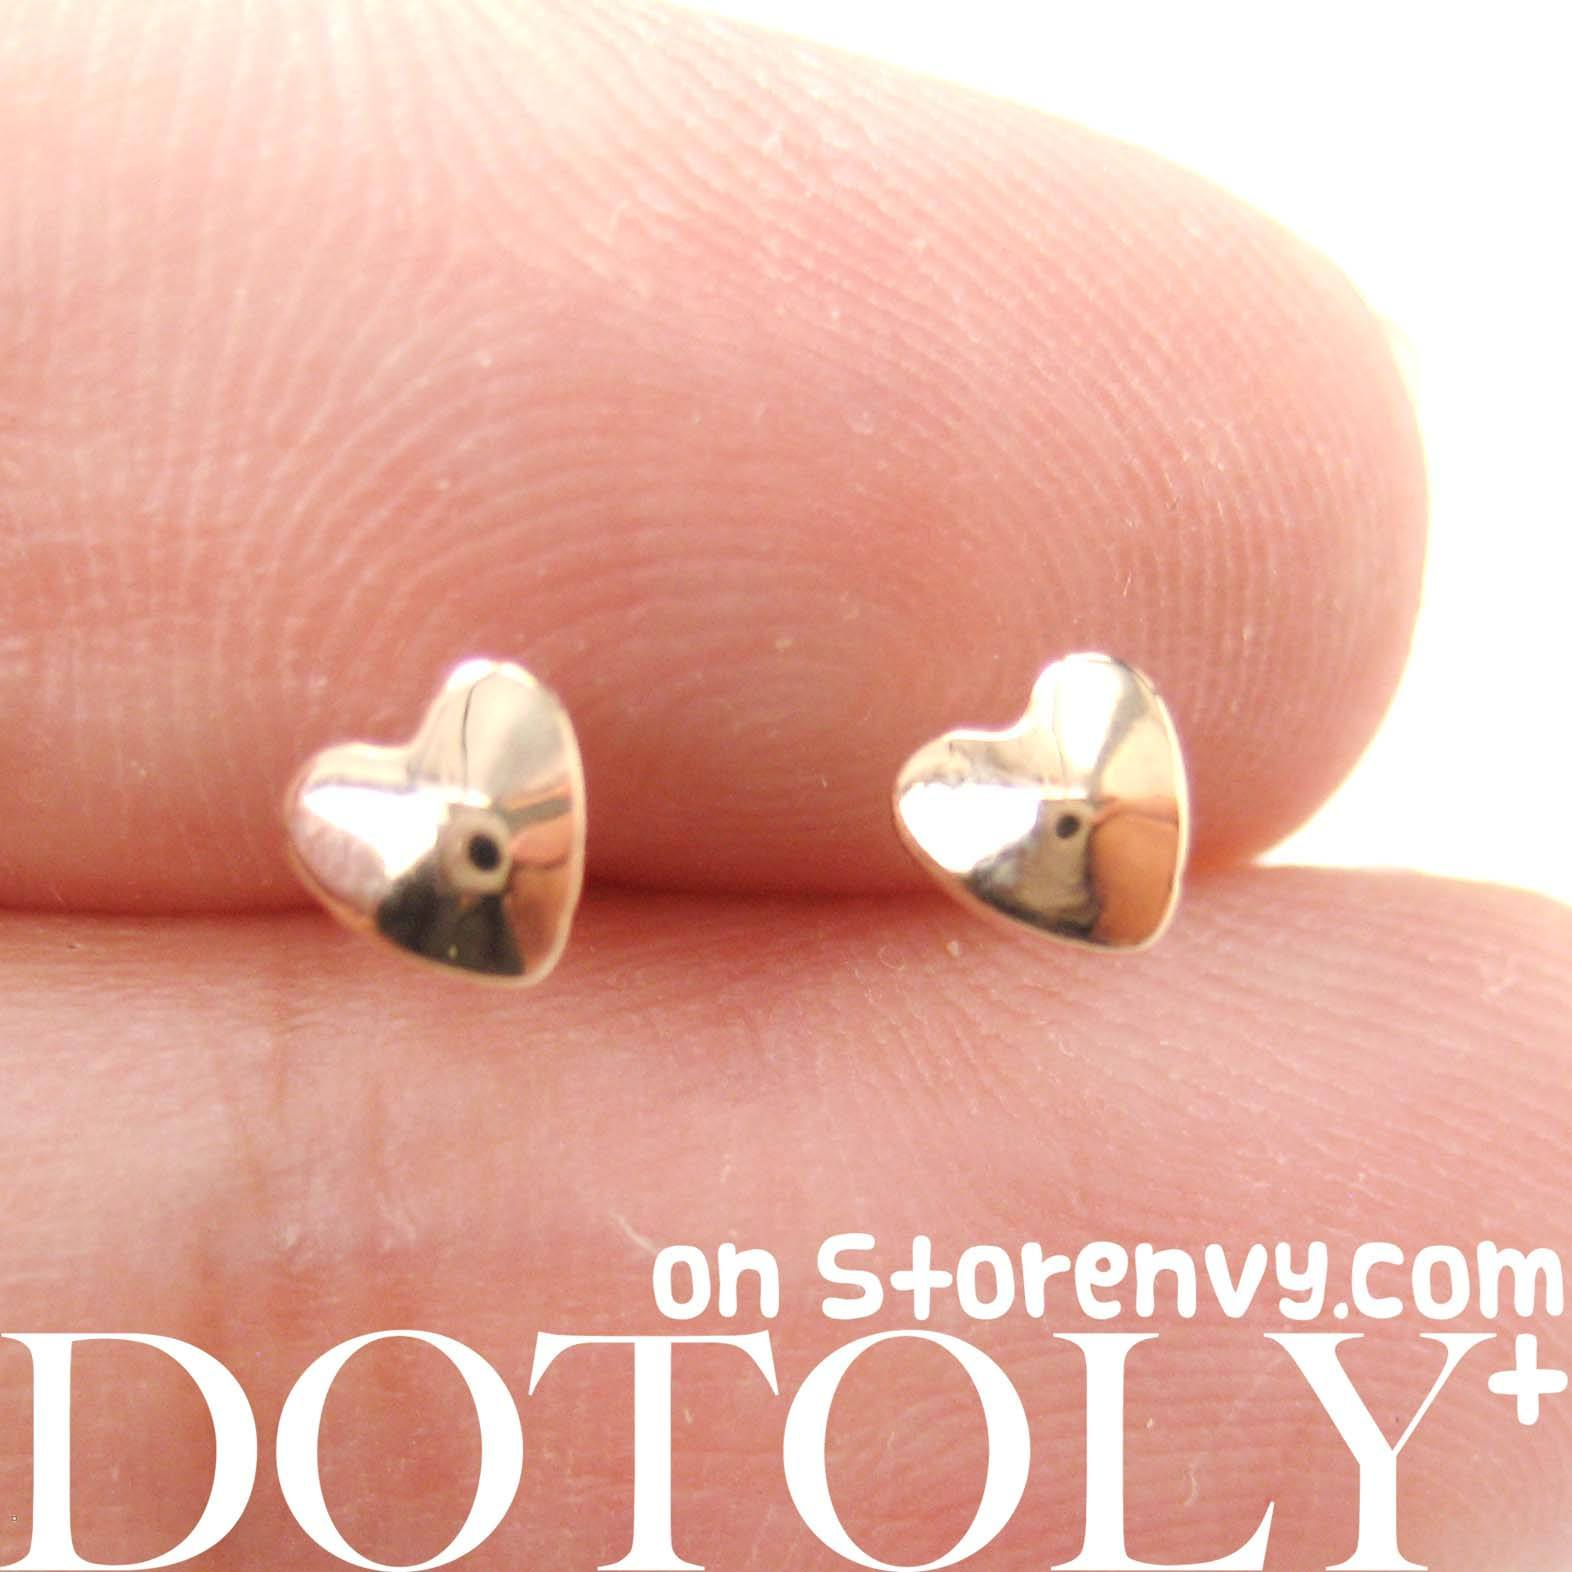 tiny-classic-heart-shaped-stud-earrings-in-rose-gold-dotoly